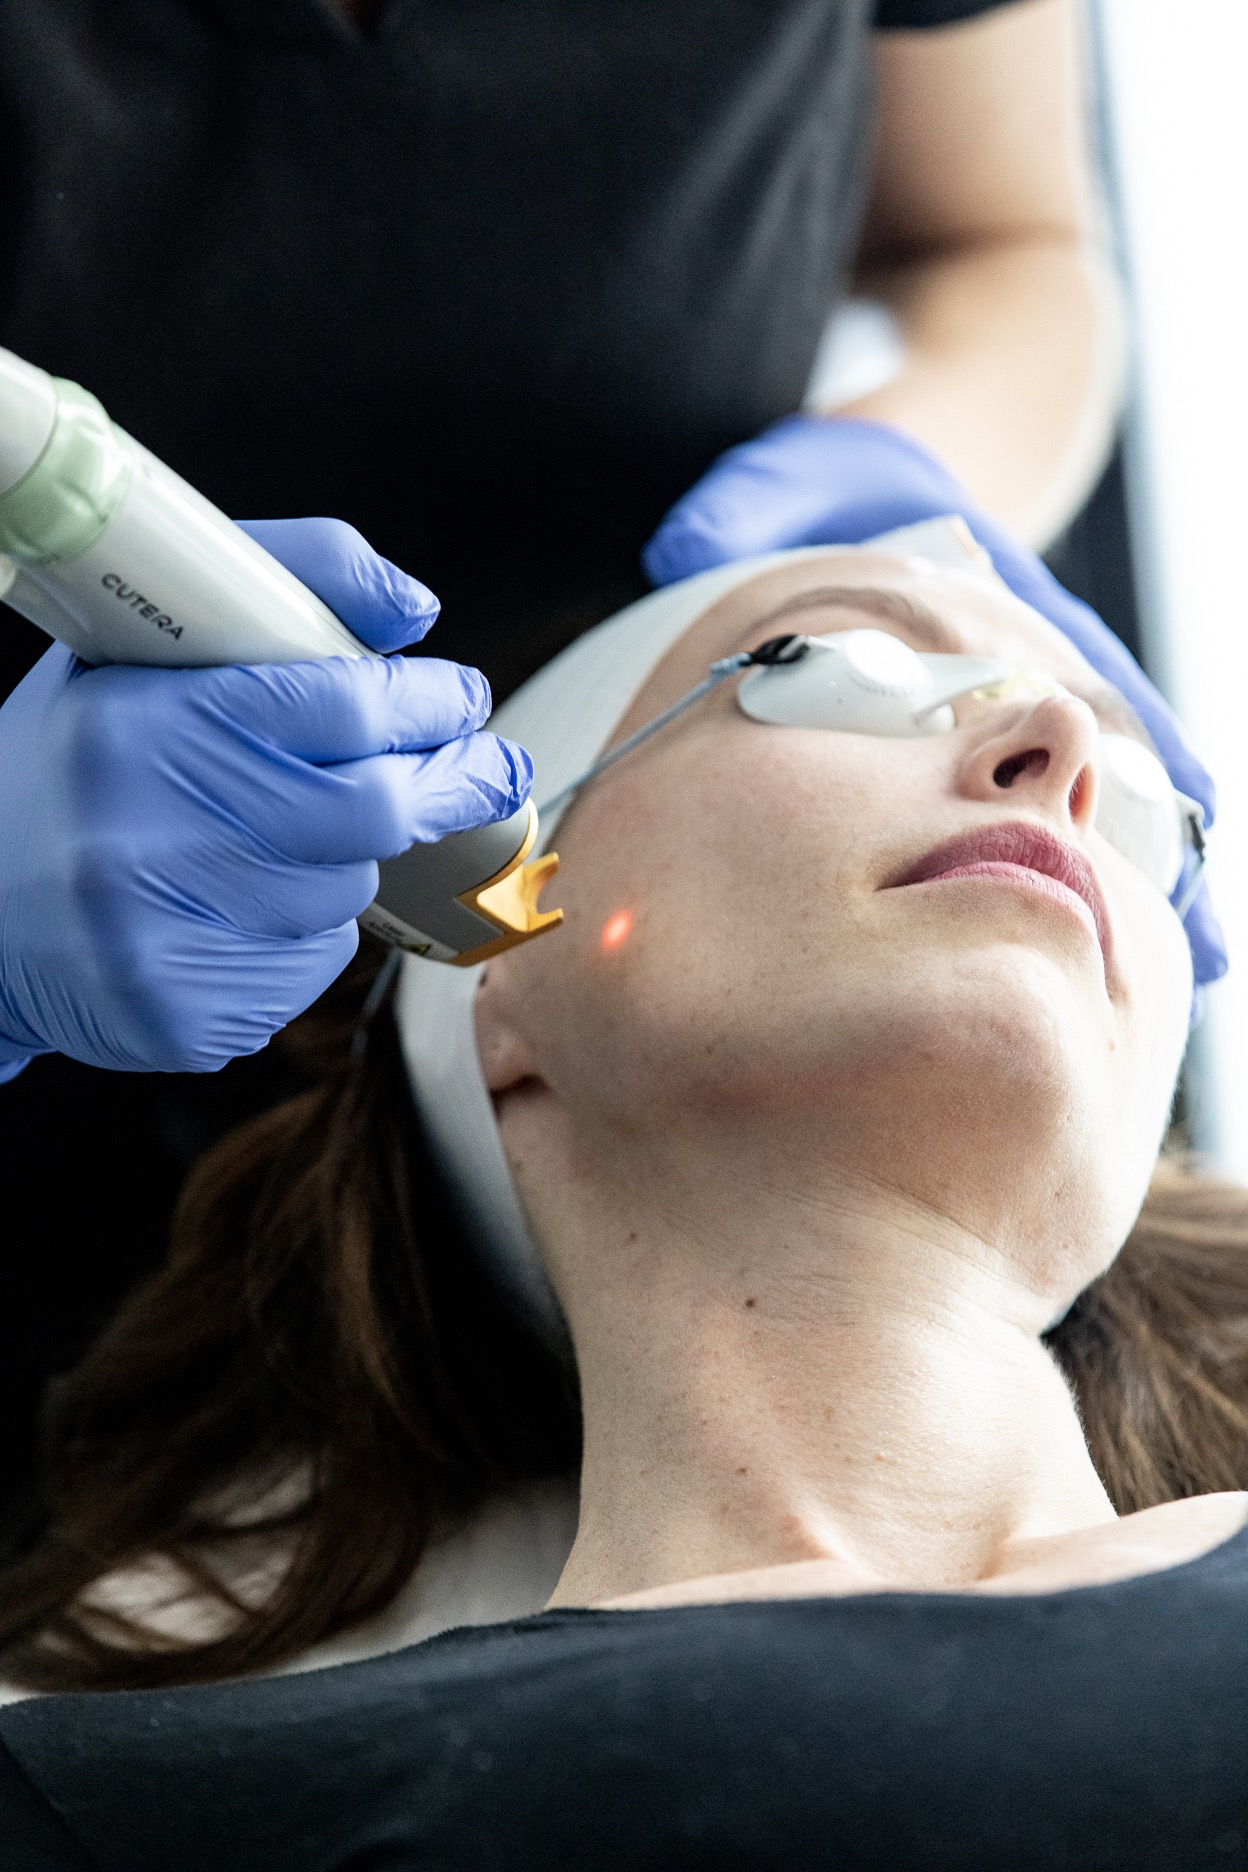 Laser Genesis to promote collagen and skin firming - this laser just feels very warm but isn't at all uncomfortable in my opinion.